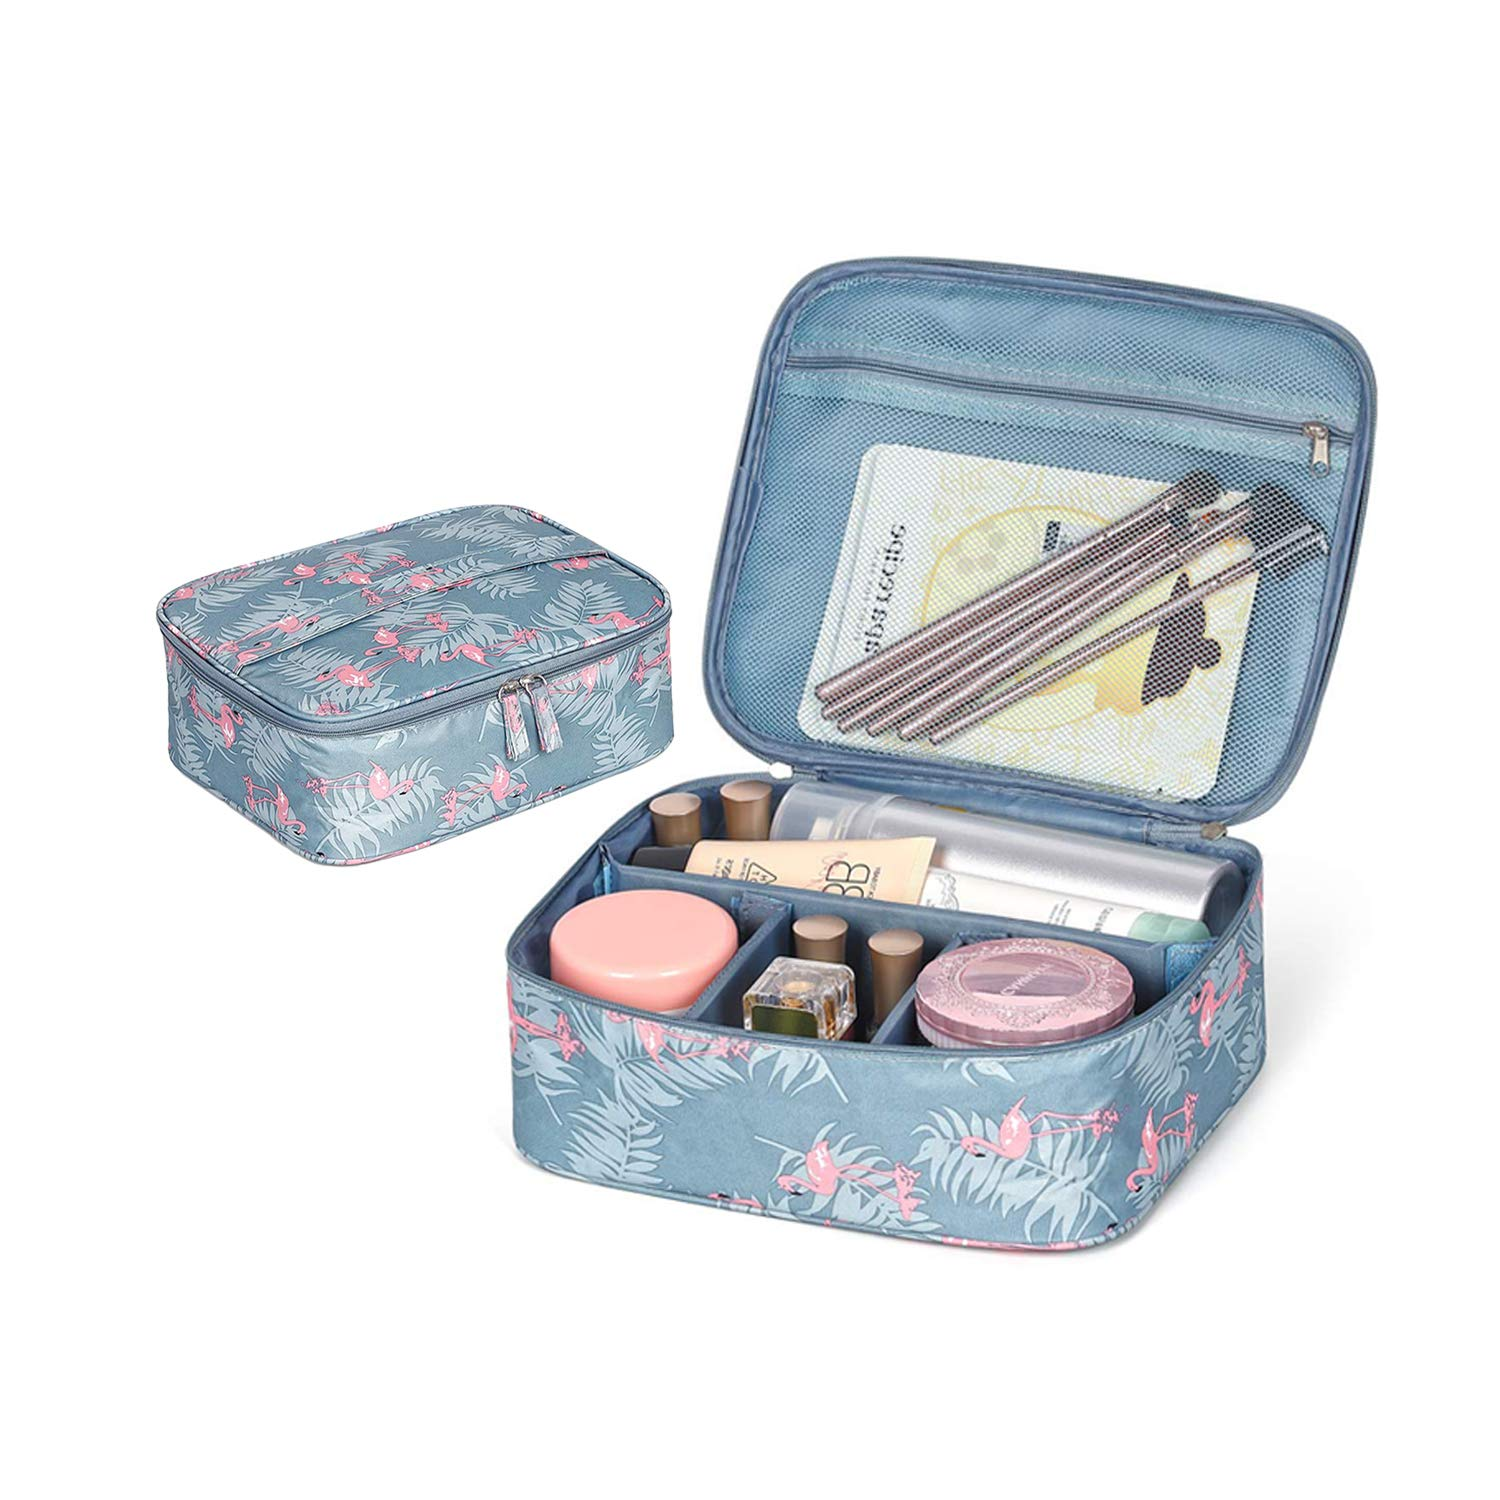 Travel Makeup Bag,Flamingo Cosmetic Case Toiletry Organizer with Adjustable Dividers for Women and Girls